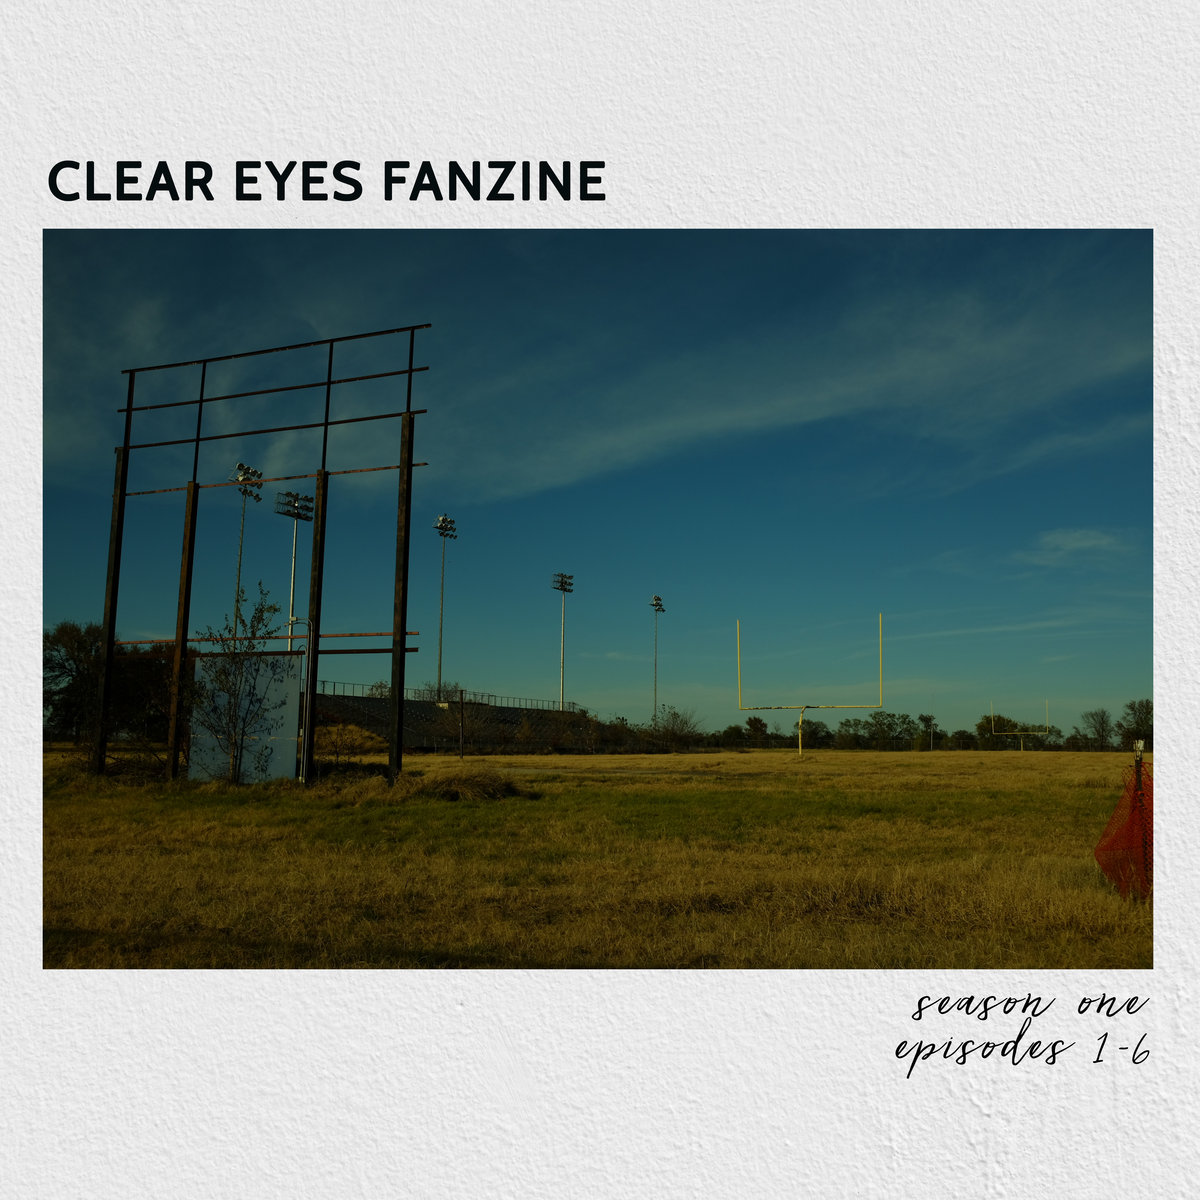 Season One, Episodes 1-6 | Clear Eyes Fanzine